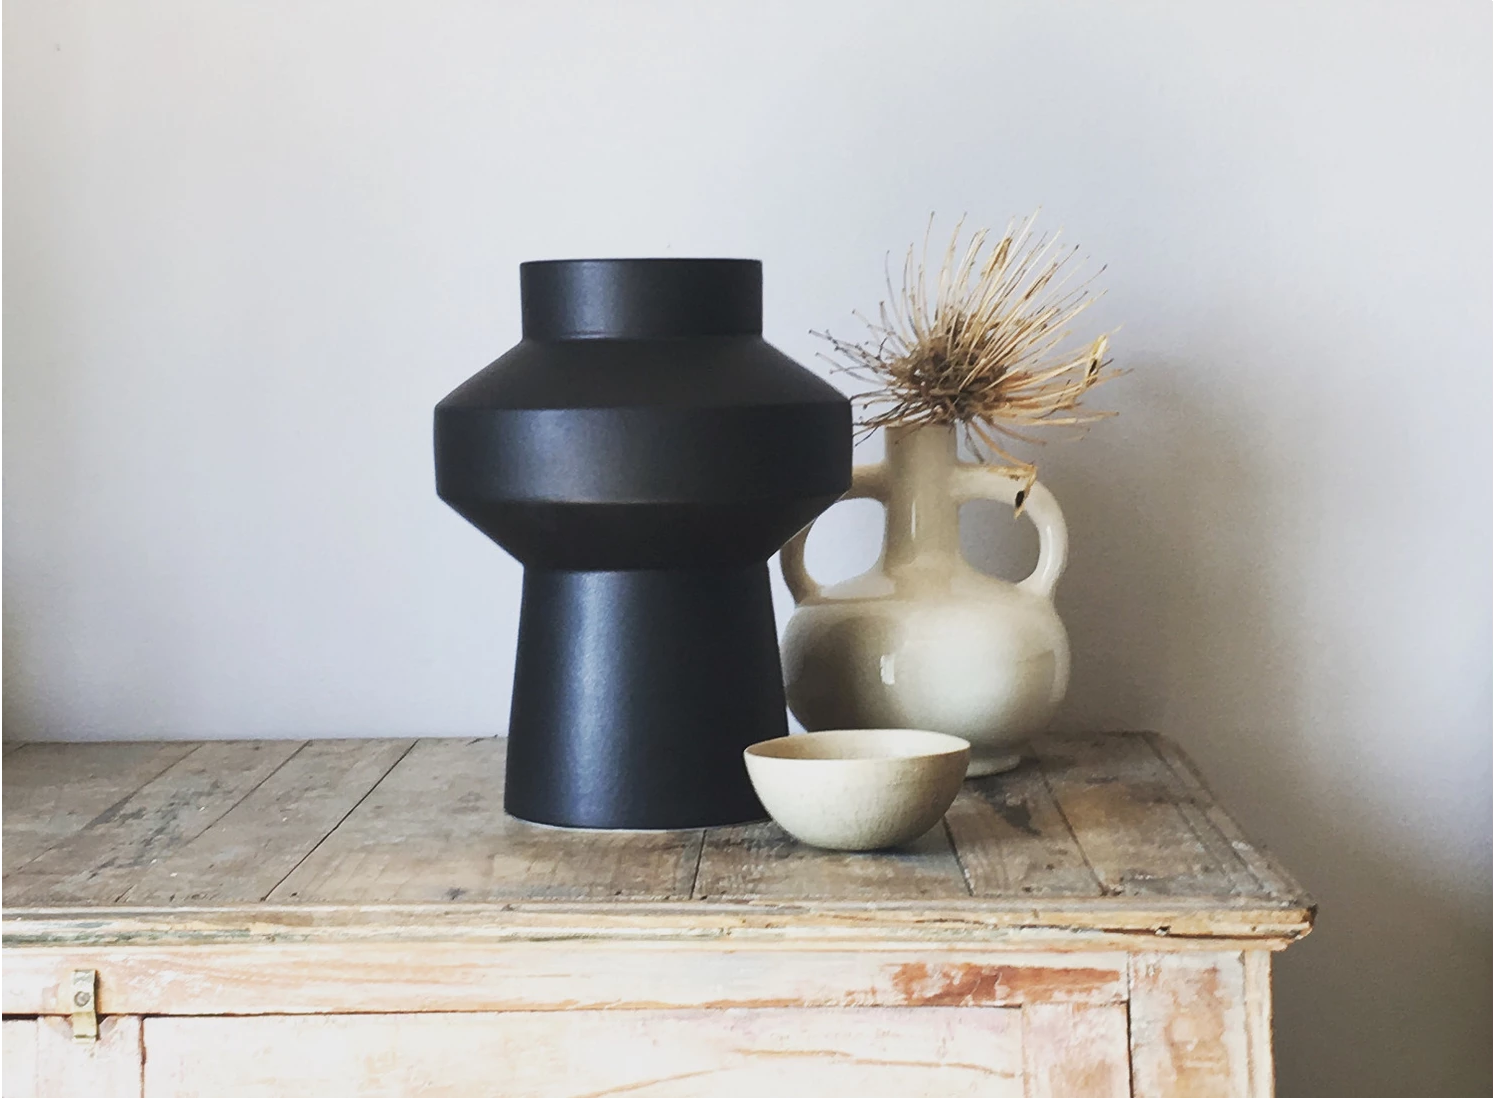 Photo 6 of 6 in 5 Indie Ceramic Brands We're Currently Crushing On